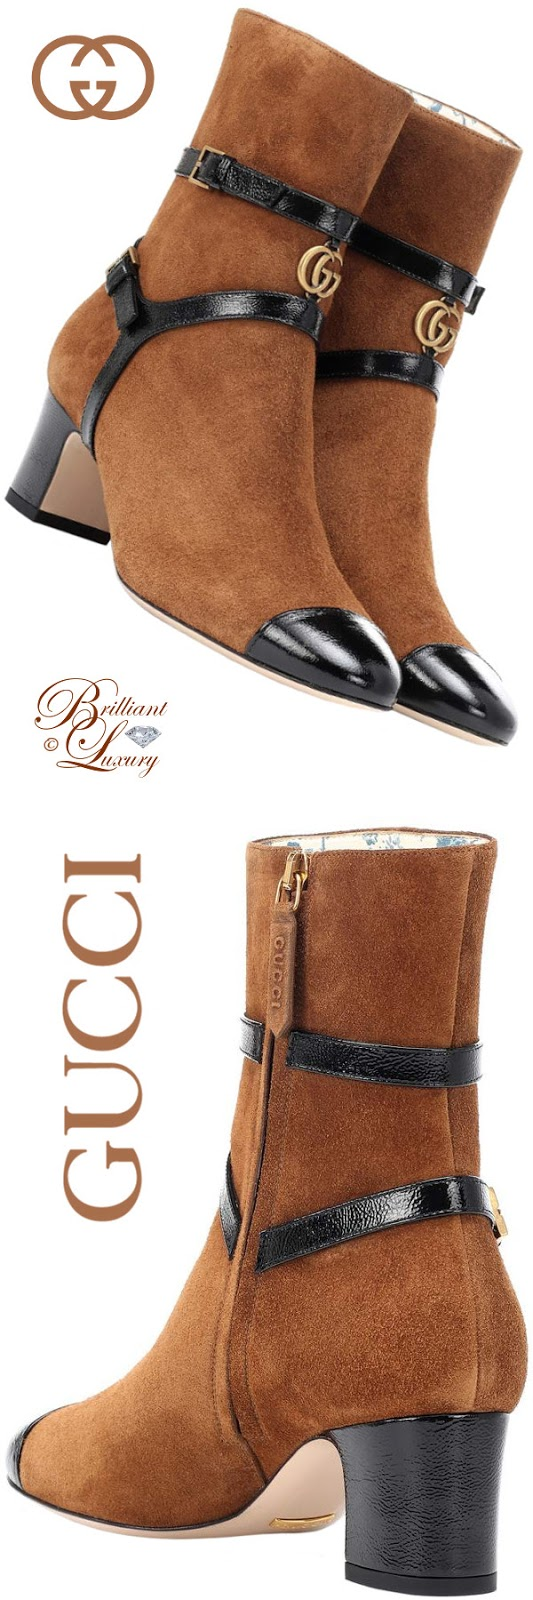 Brilliant Luxury ♦ Gucci Suede Ankle Boots